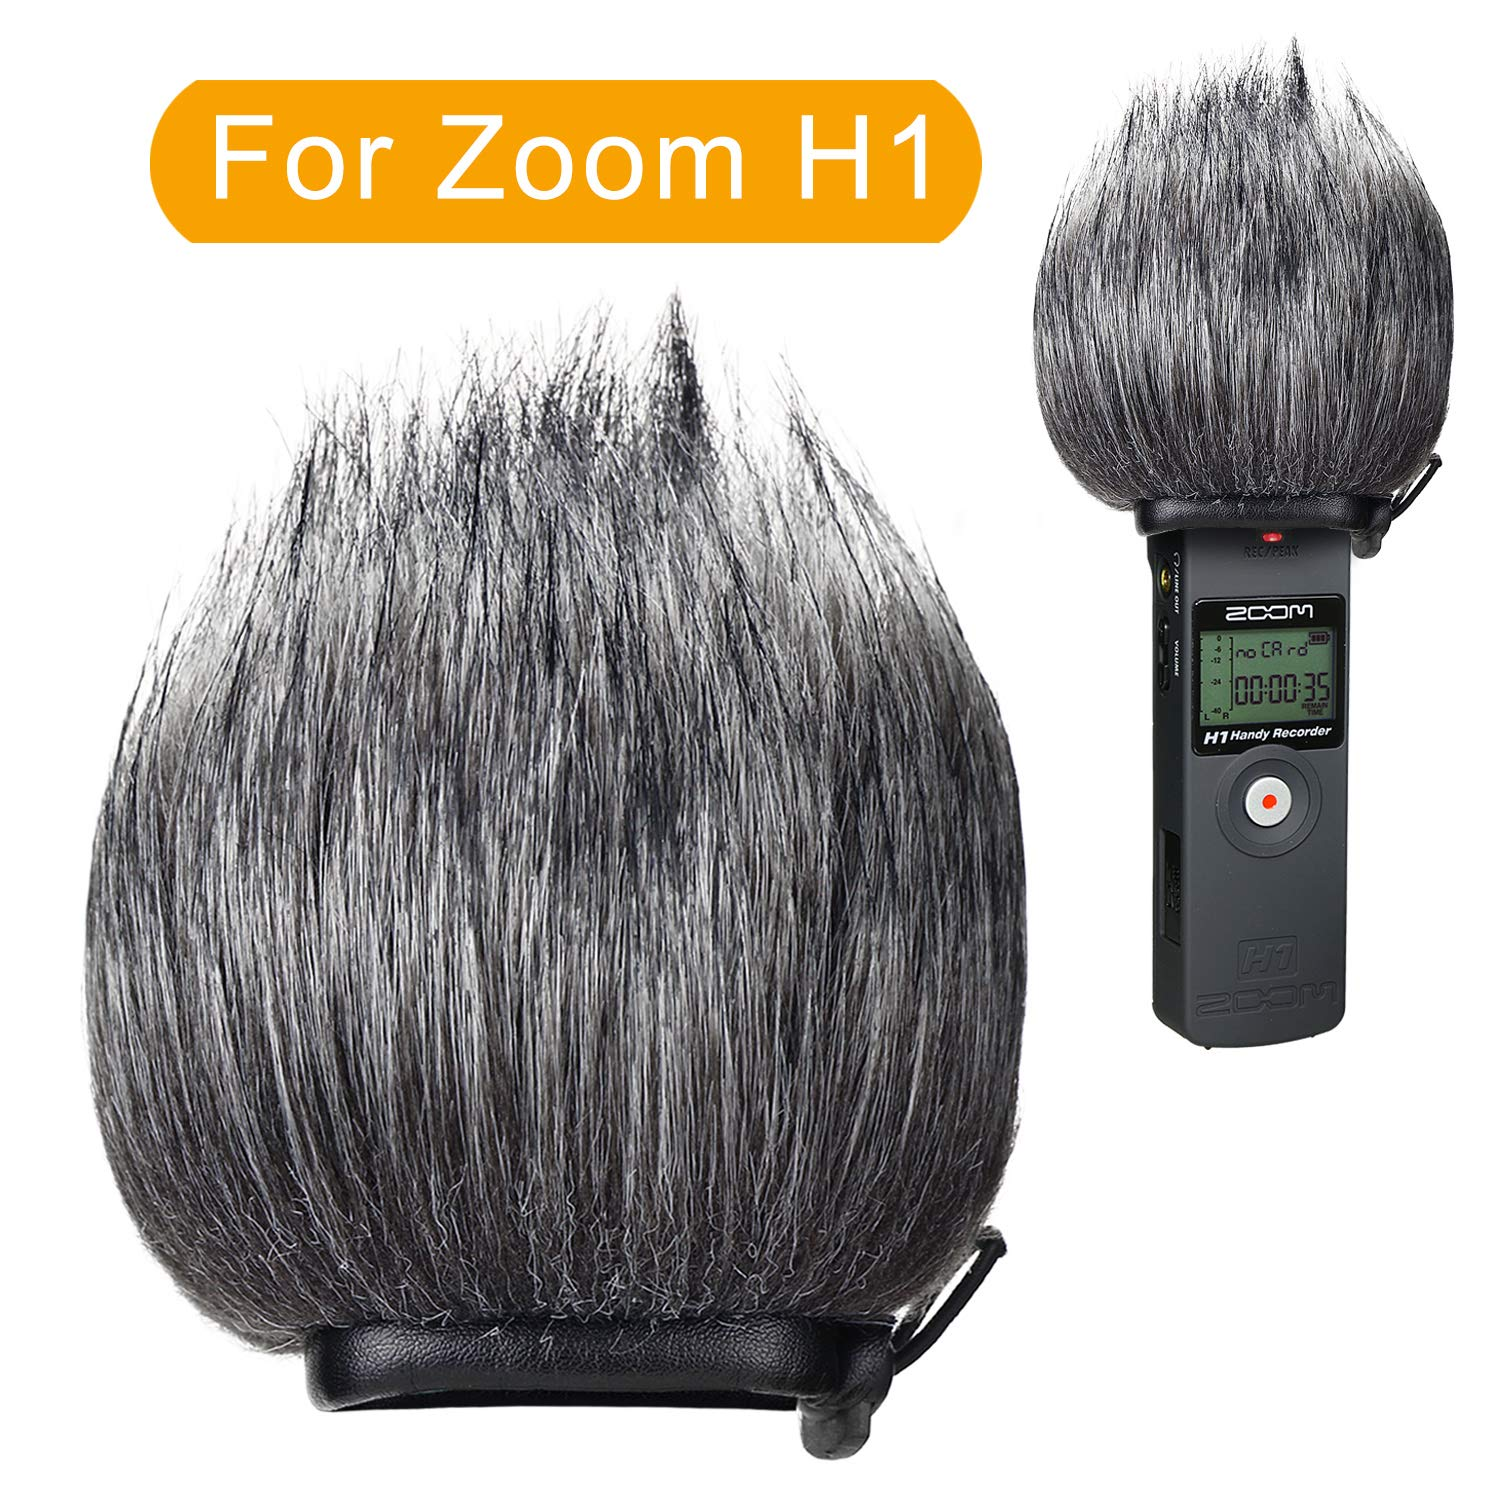 YOUSHARES Furry Outdoor Windscreen Muff, Pop Filter/Wind Cover Shield for Zoom H5, H6 Portable Recorder Heartorigin 2